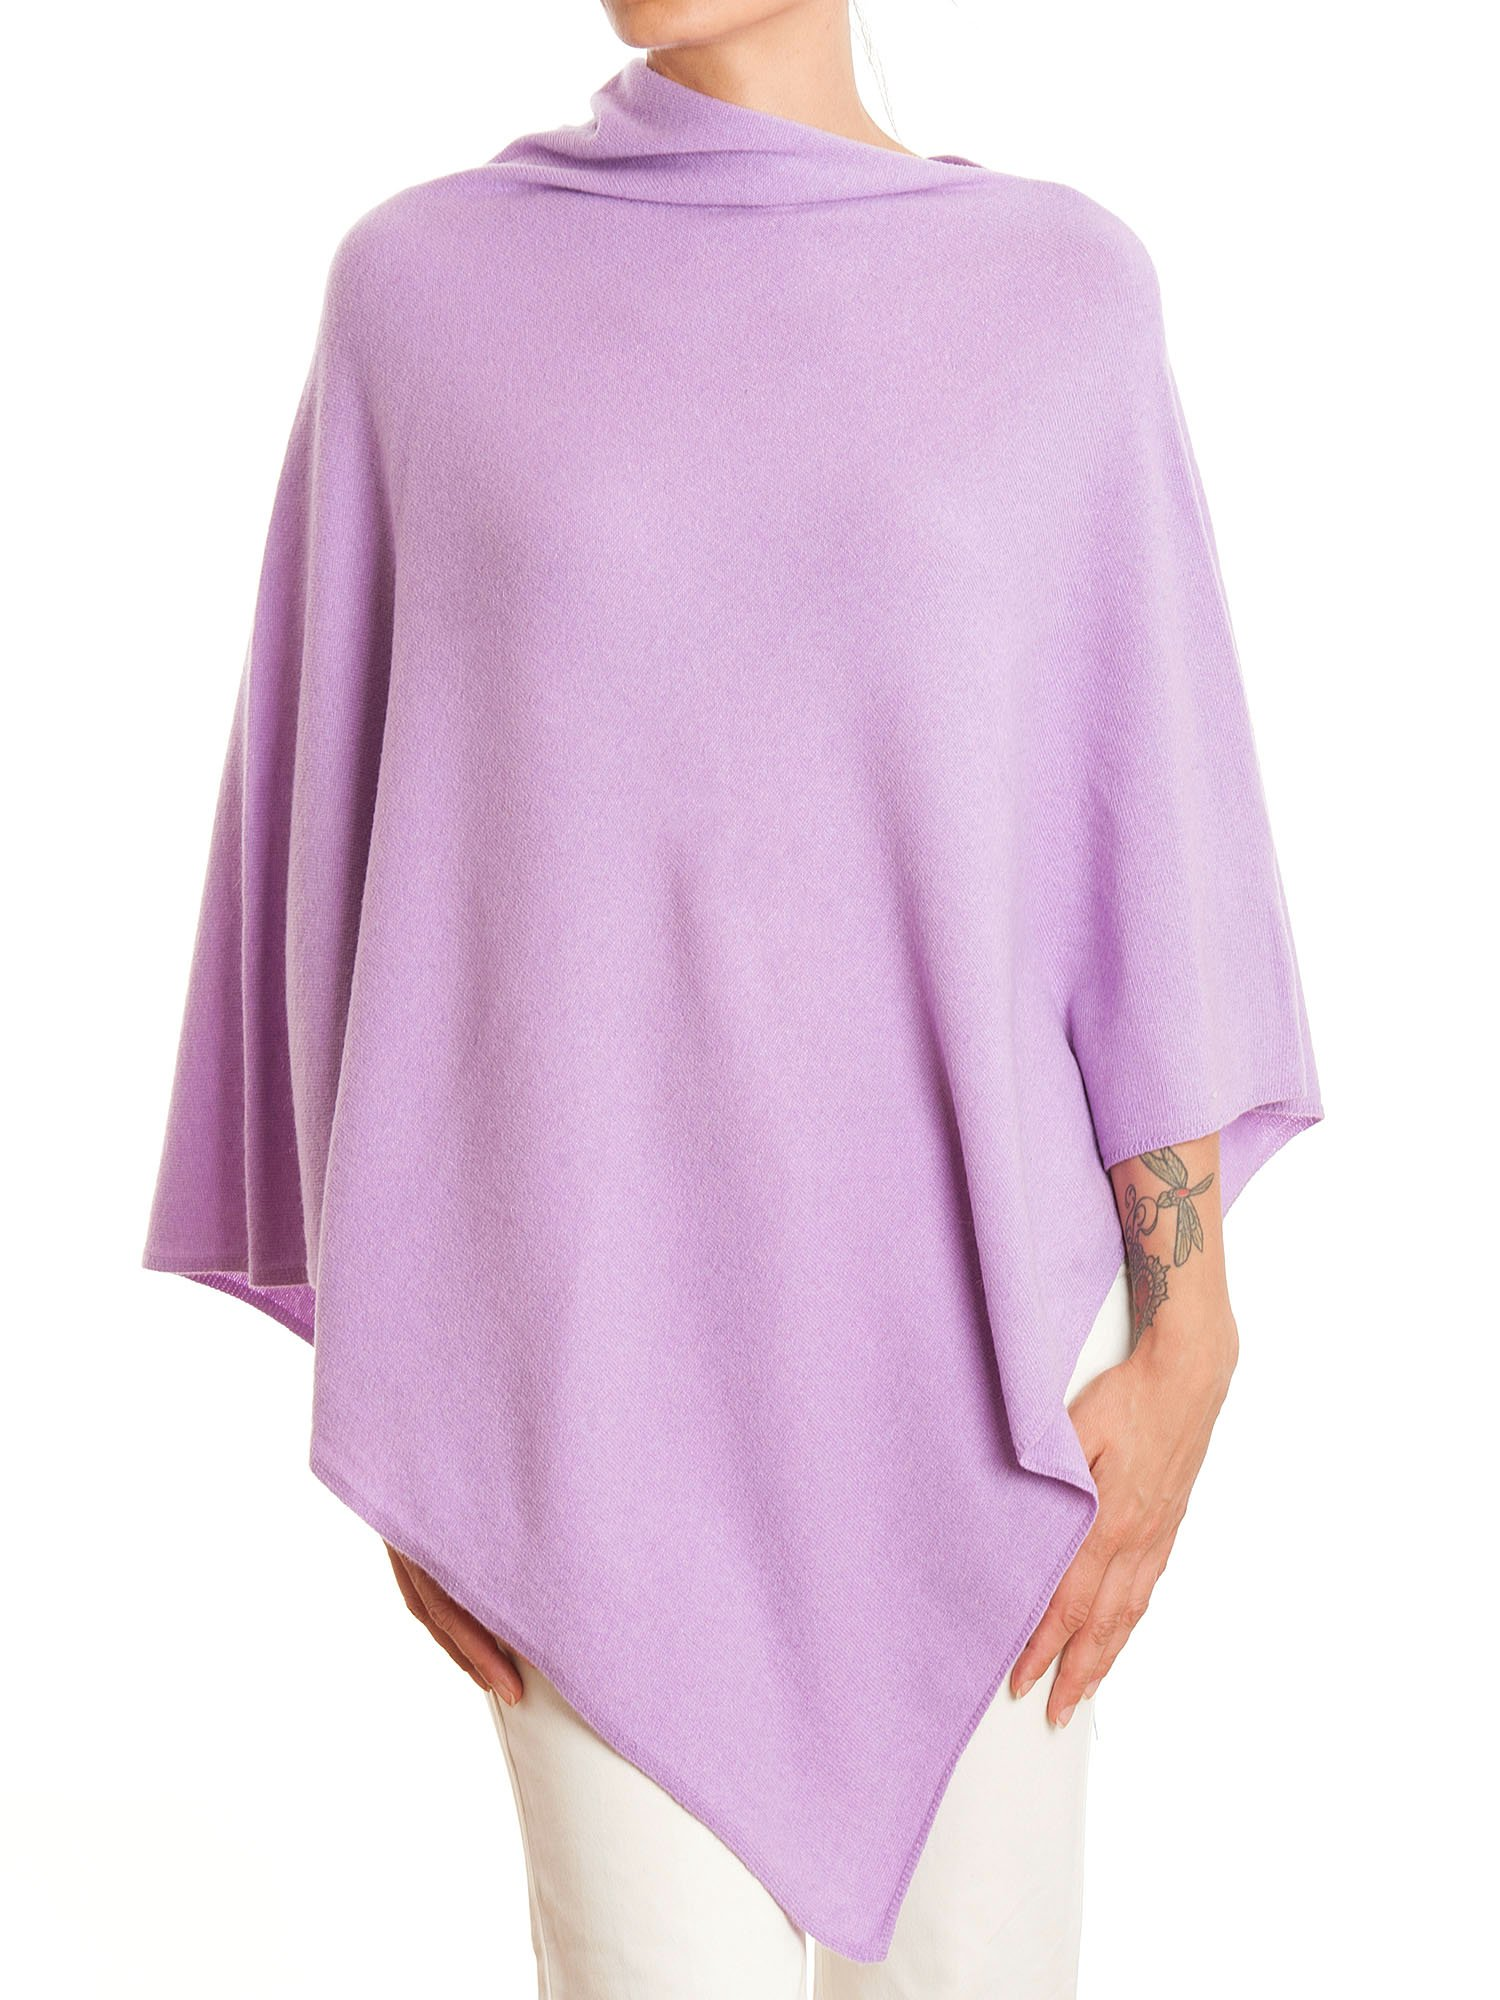 DALLE PIANE CASHMERE - Poncho Cashmere Blend - Made in Italy, Color: Lilac, One Size